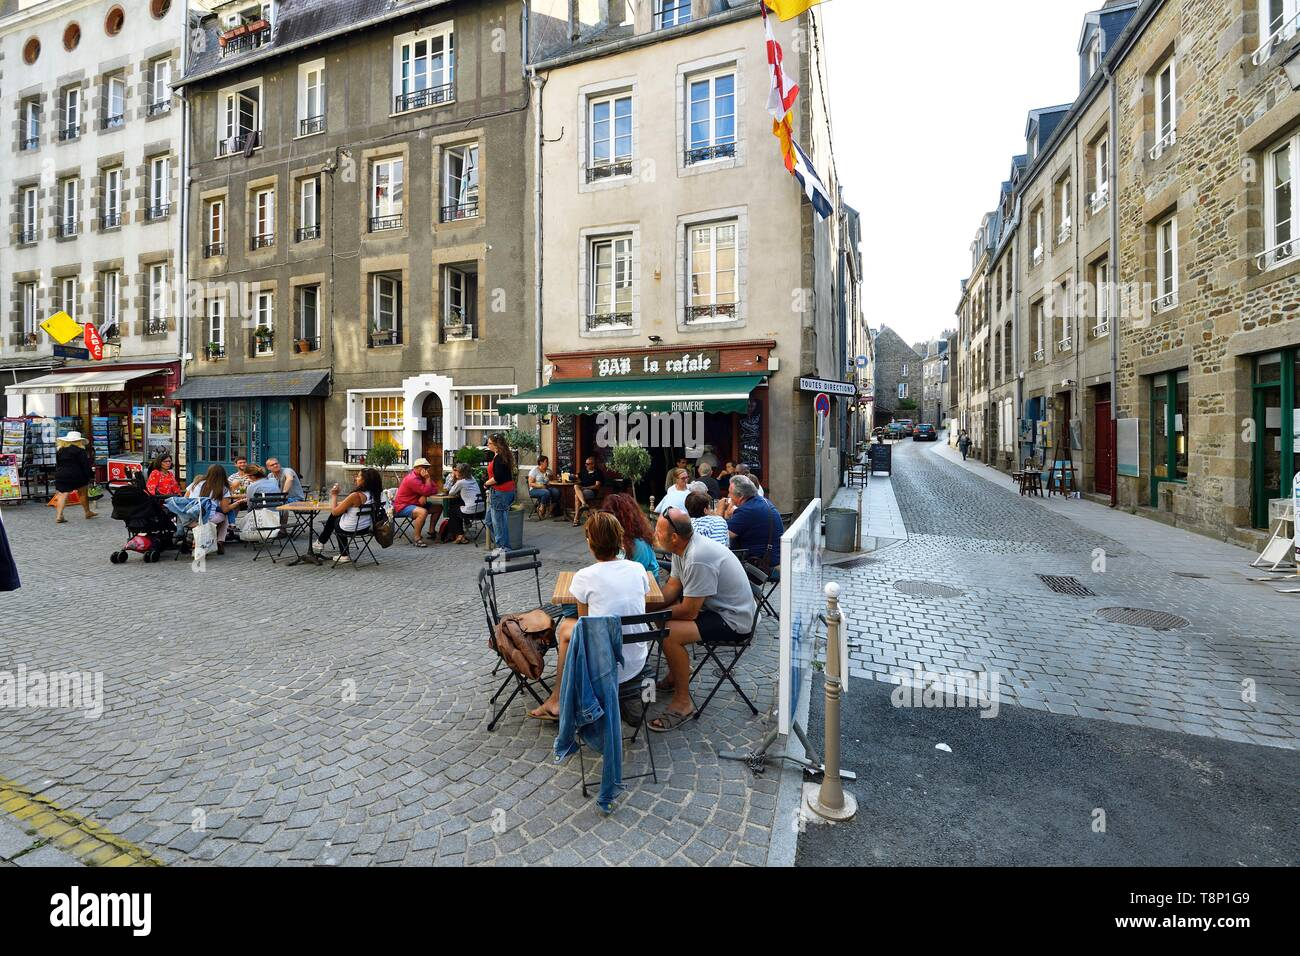 France, Manche, Cotentin, Granville, the Upper Town built on a rocky headland on the far eastern point of the Mont Saint Michel Bay, the upper city, Place Cambernon - Stock Image